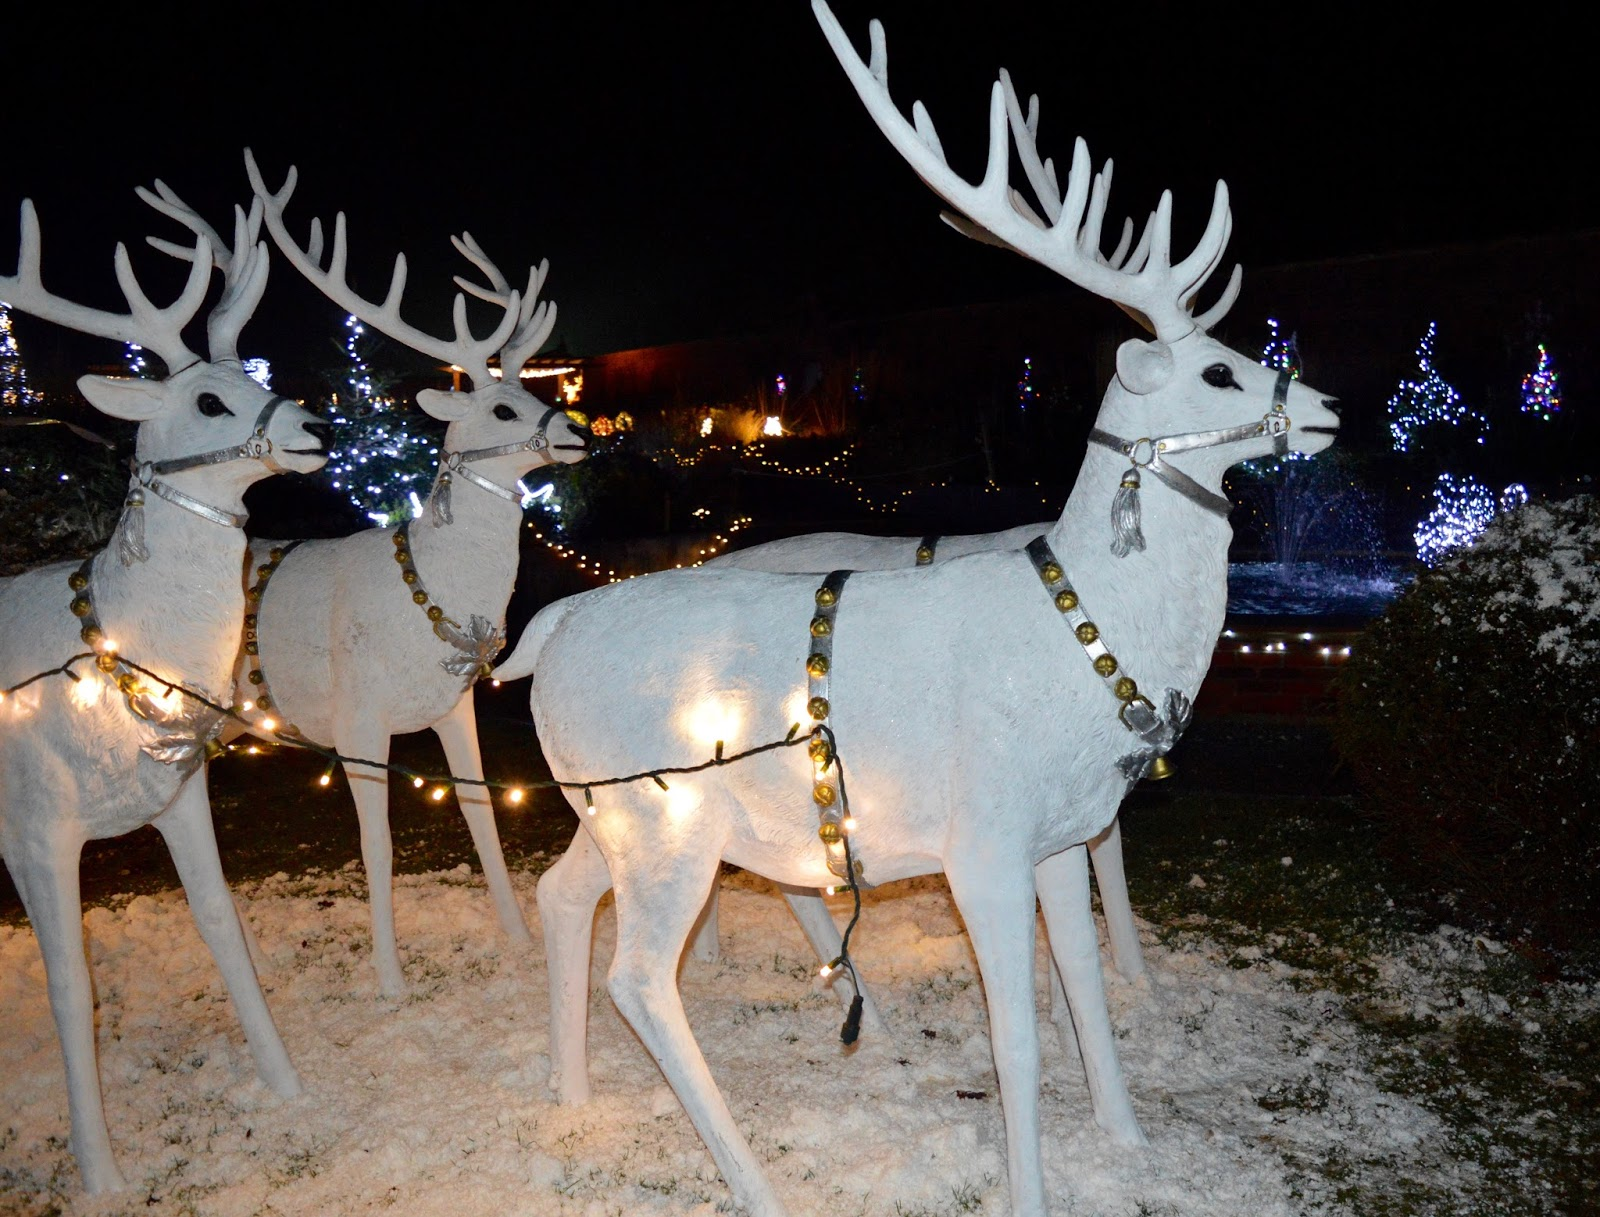 Winter Wonderland Christmas Light Show | A Wynyard Hall Garden Event - A Review - Ice Queen Reindeer